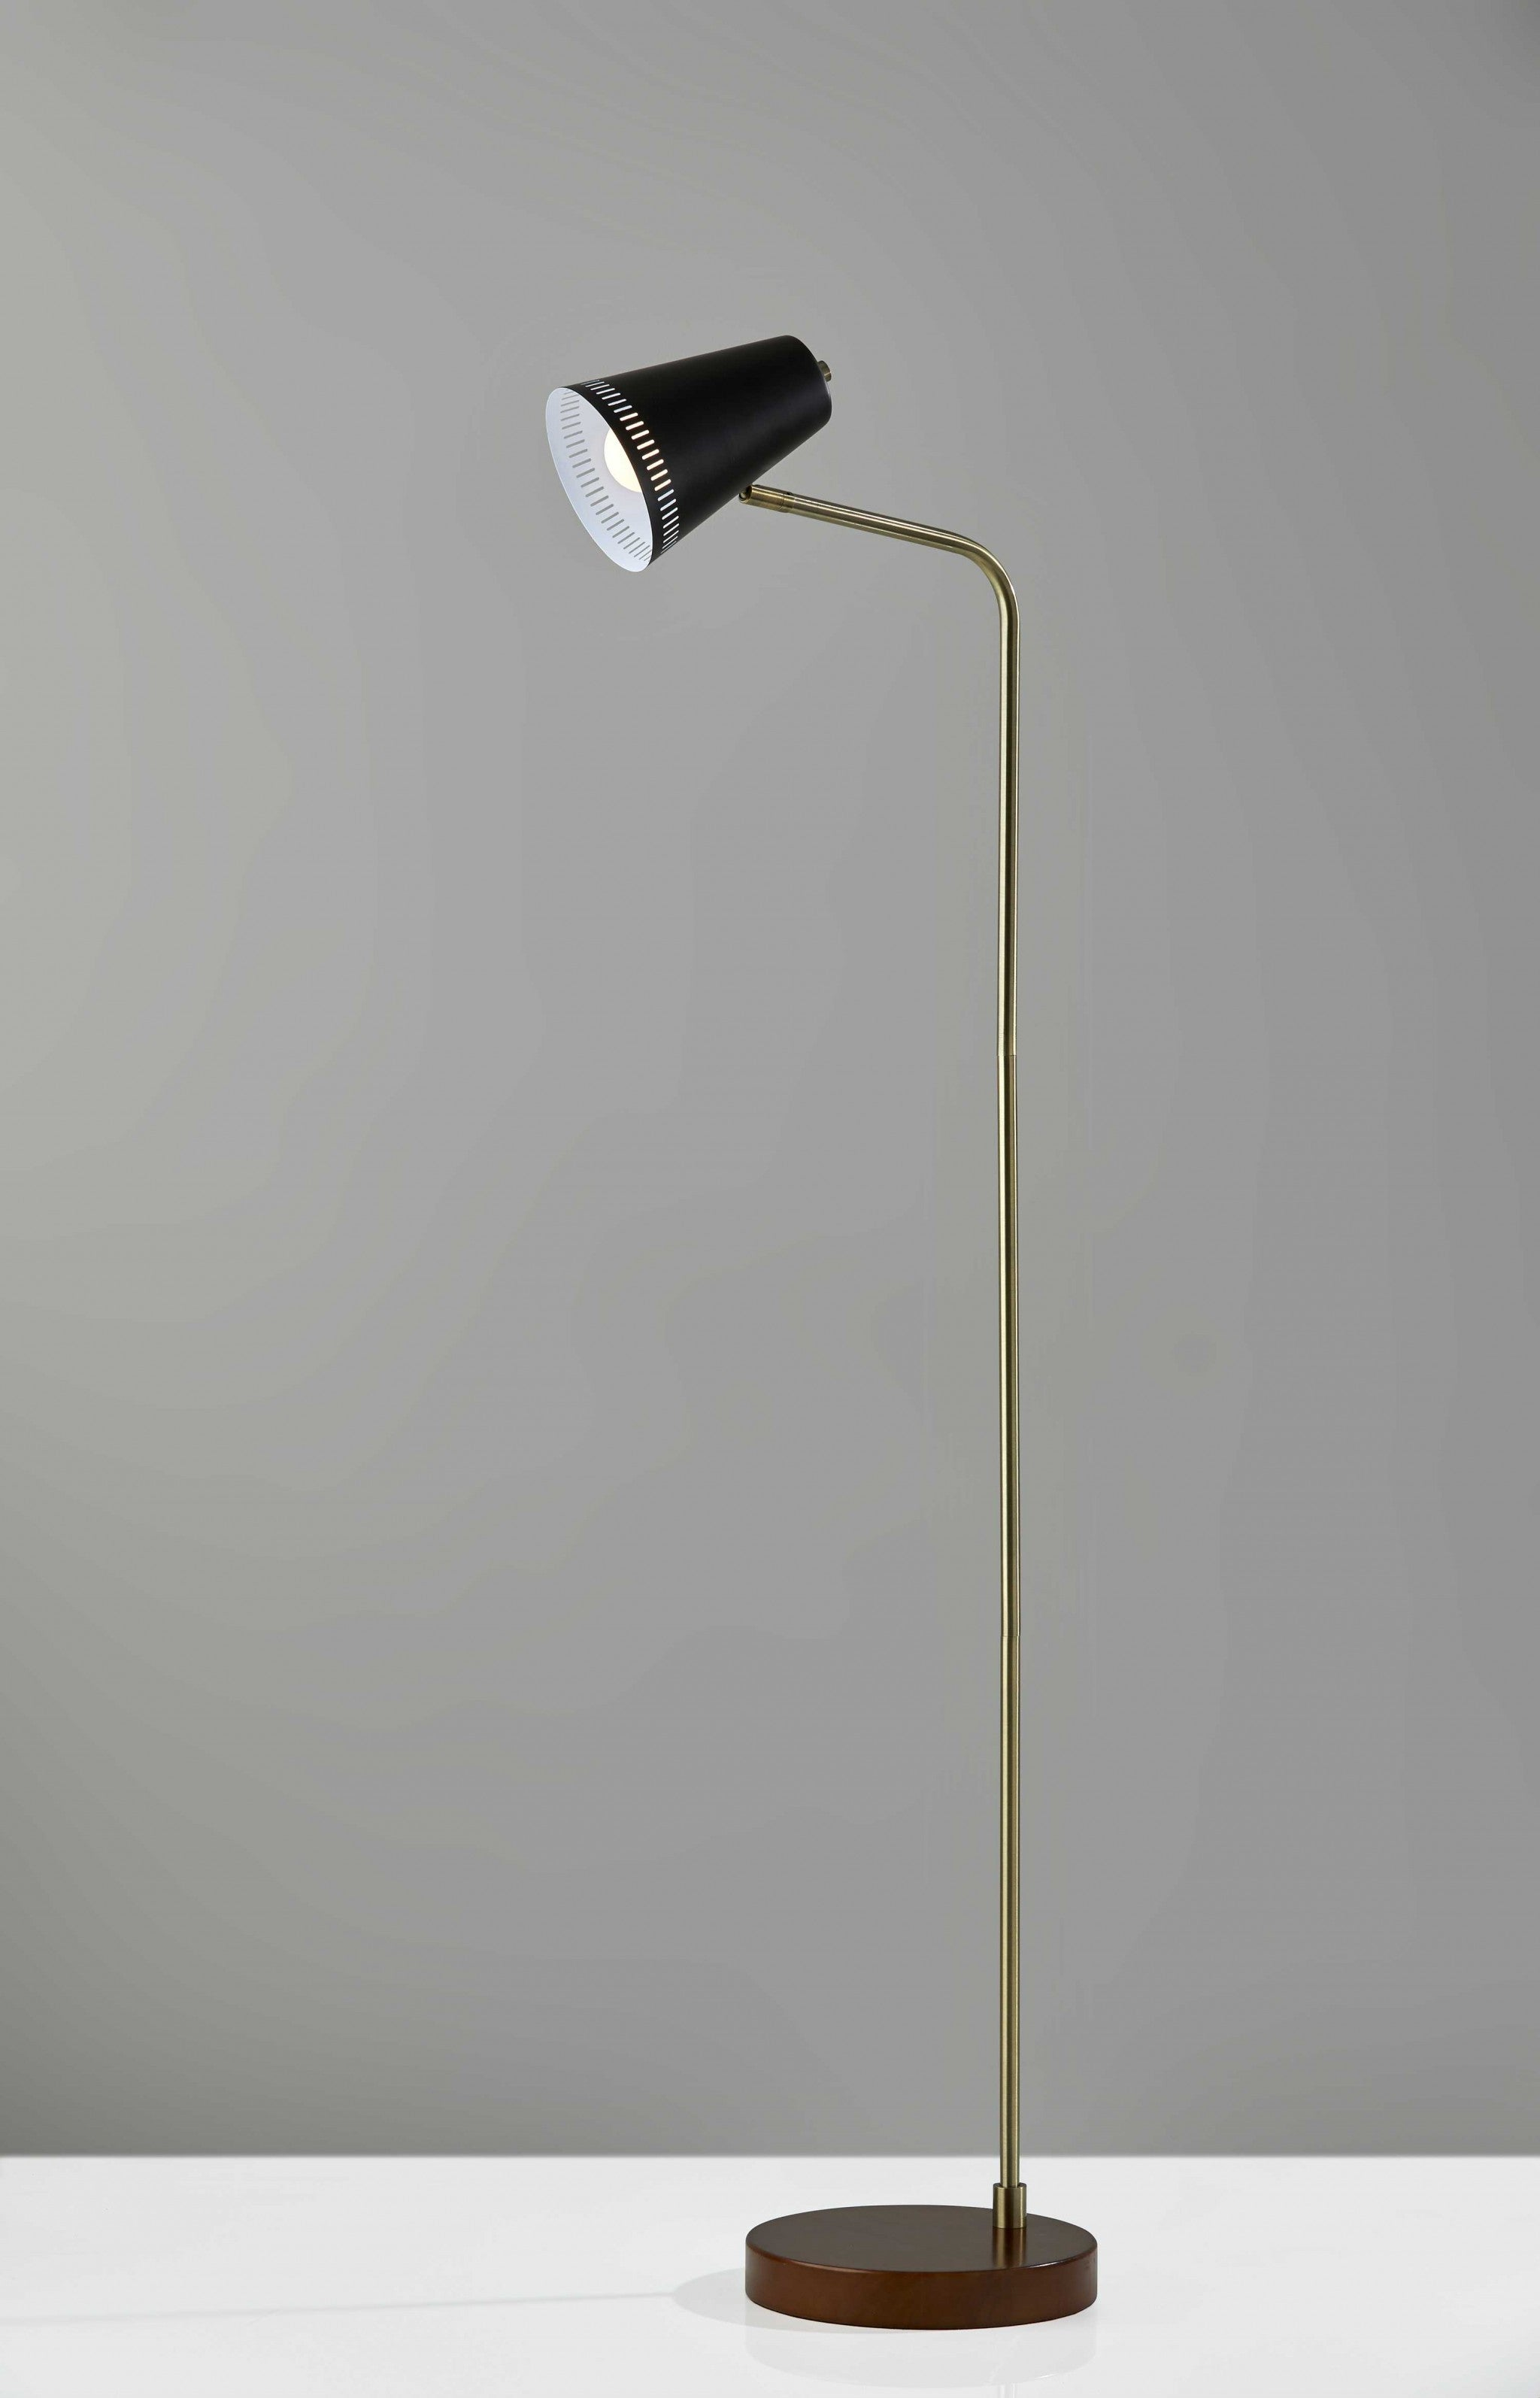 Brass Adjustable Floor Lamp with White Metal Vented Cone Shades